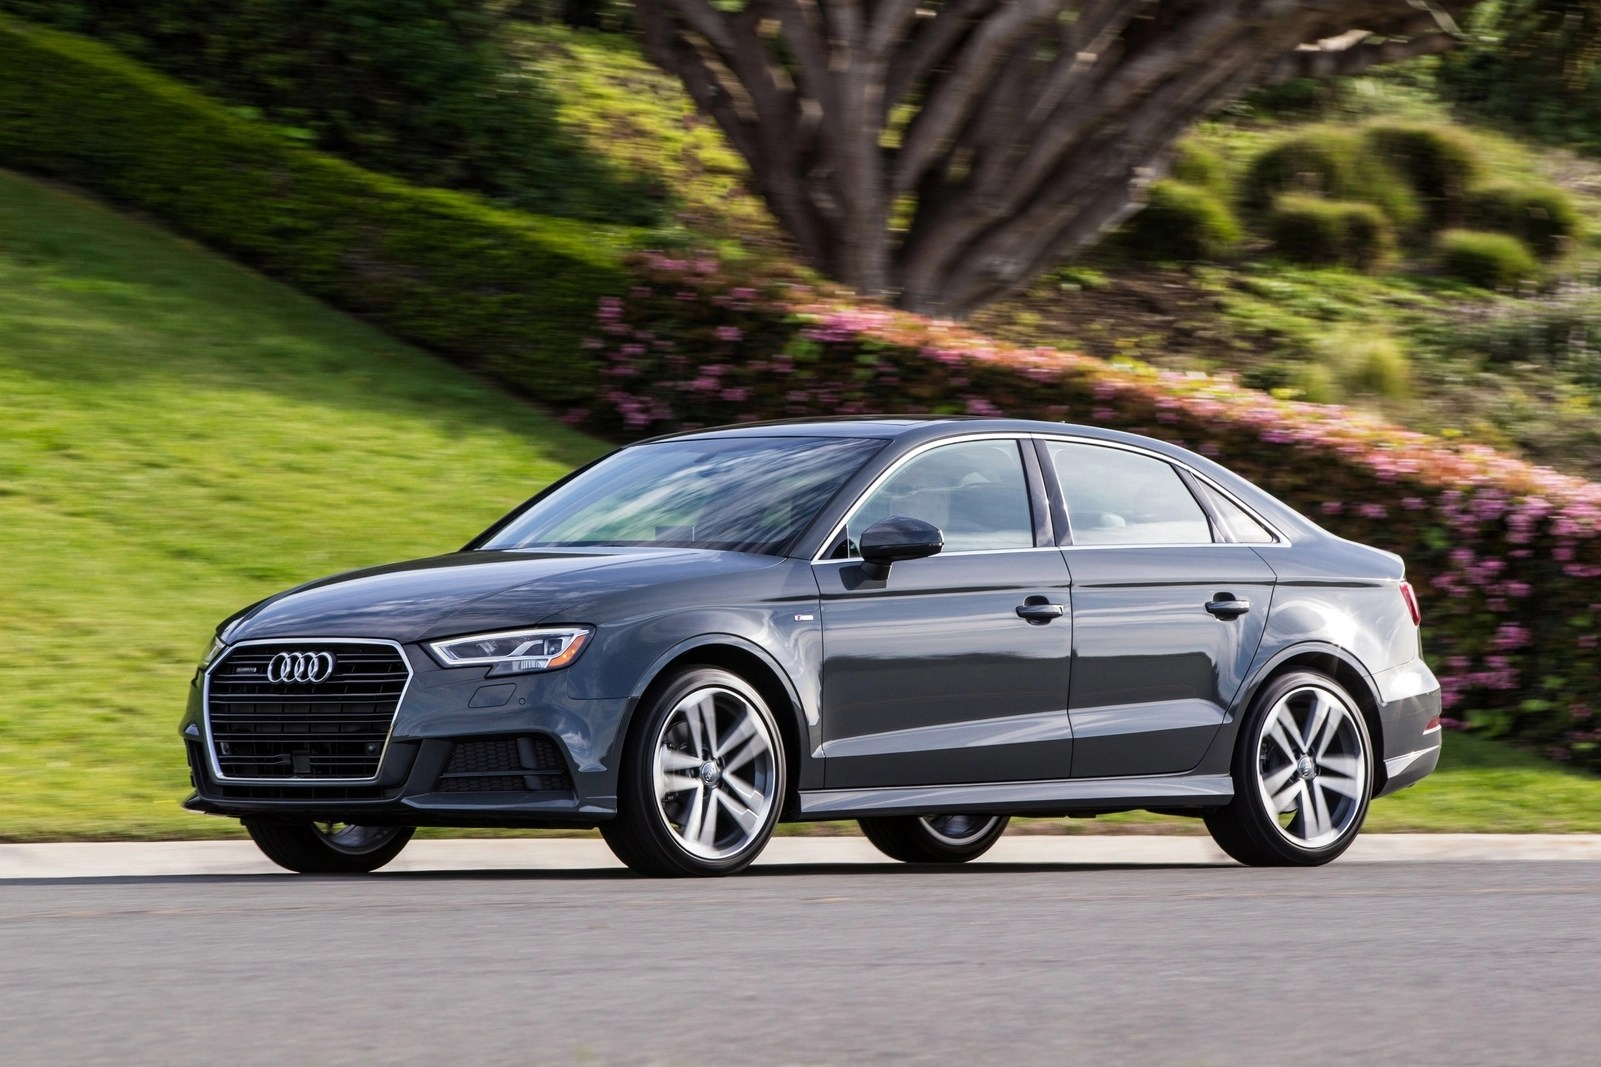 2018 audi a3 named best luxury small car for the money by u s news world report audi club. Black Bedroom Furniture Sets. Home Design Ideas